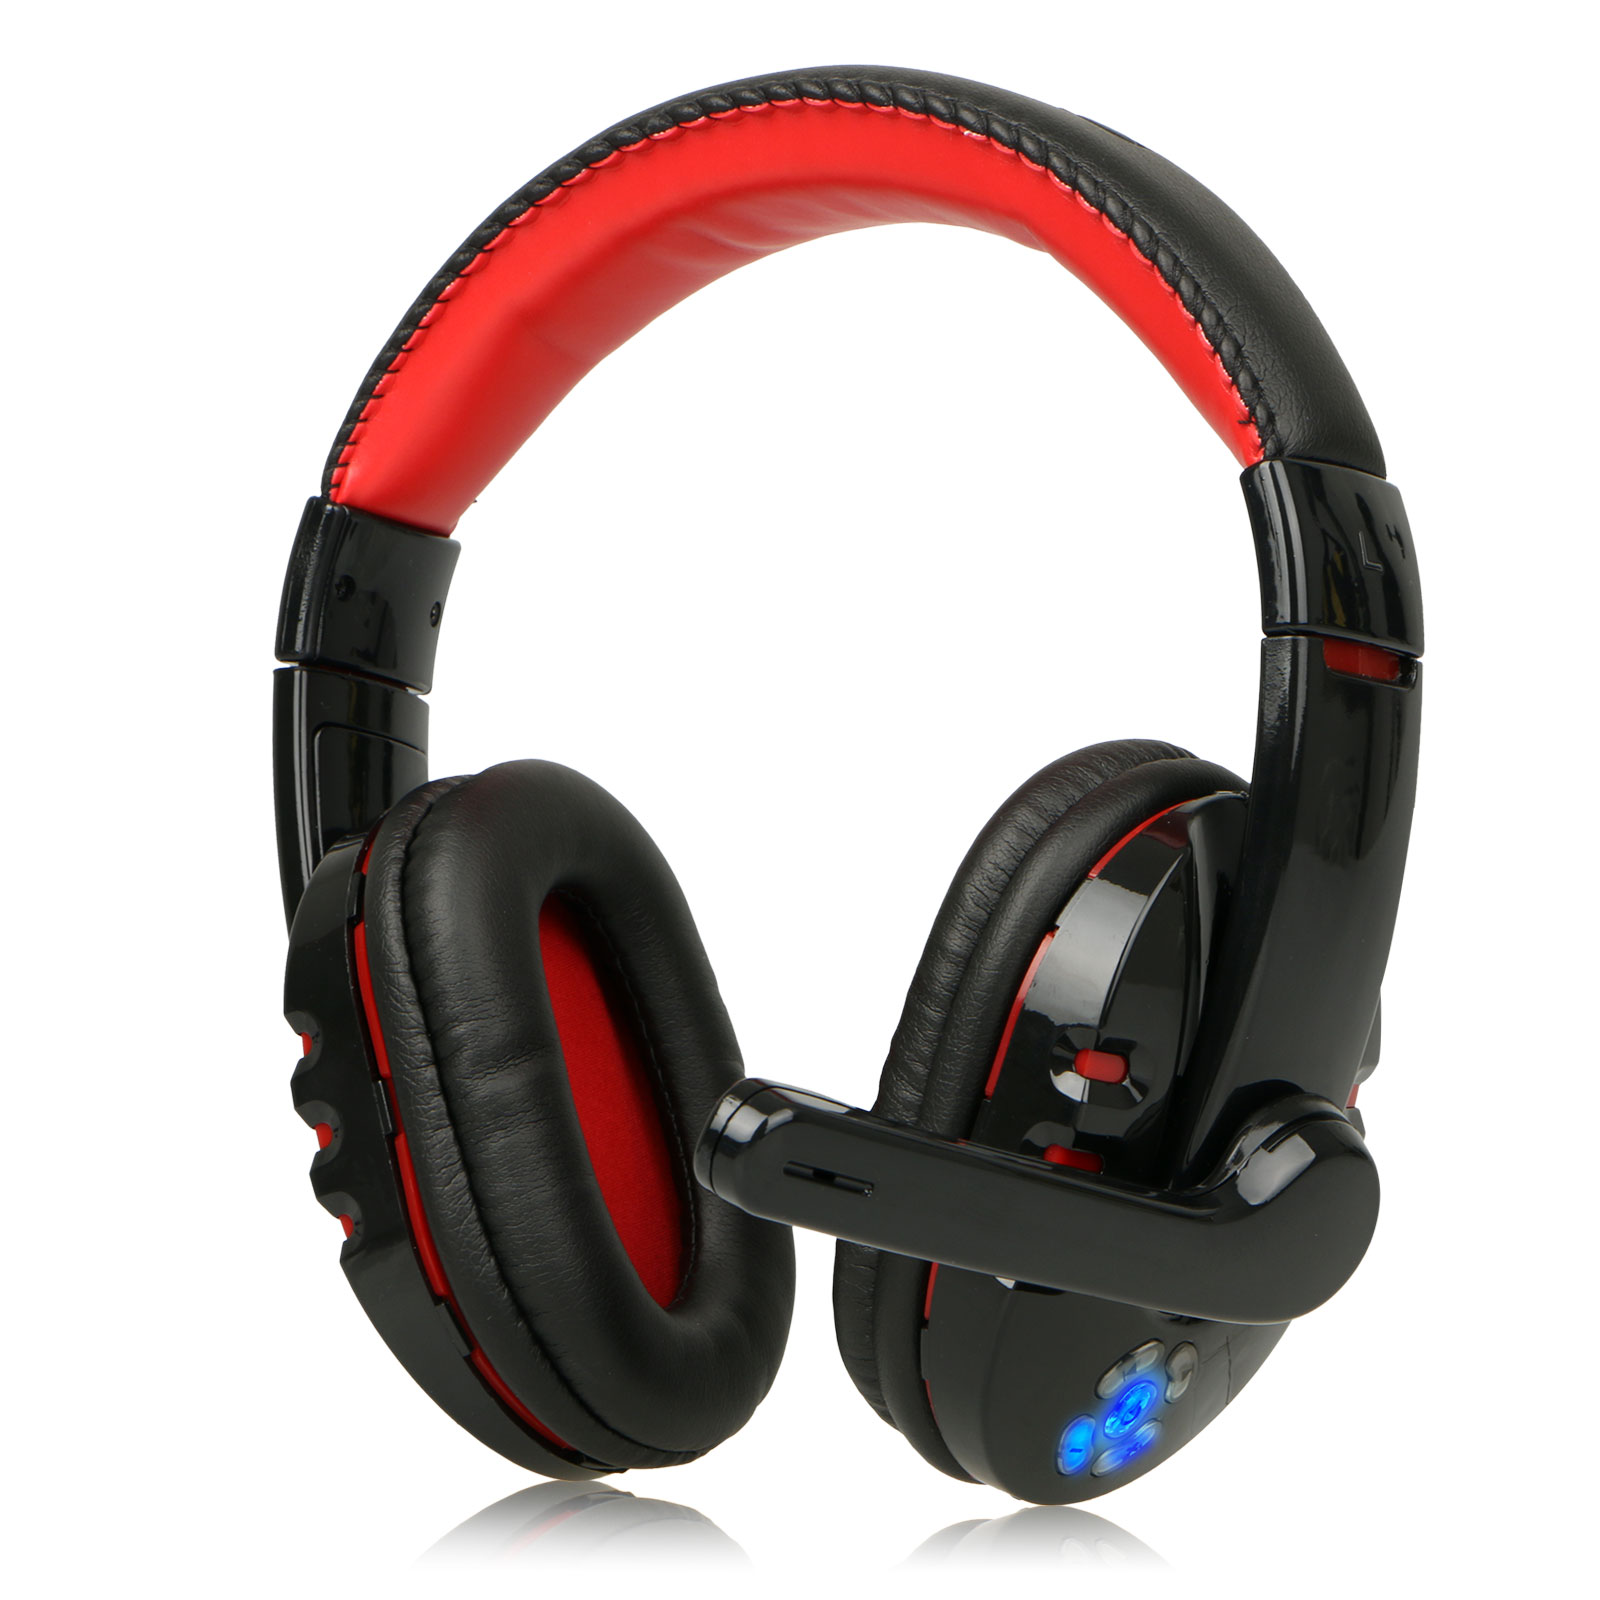 V8 Gaming Headsets, Wireless Bluetooth 4.2 Game Headphones with Mic Earphones Adjustable Headband for PC Tablet Smartphone